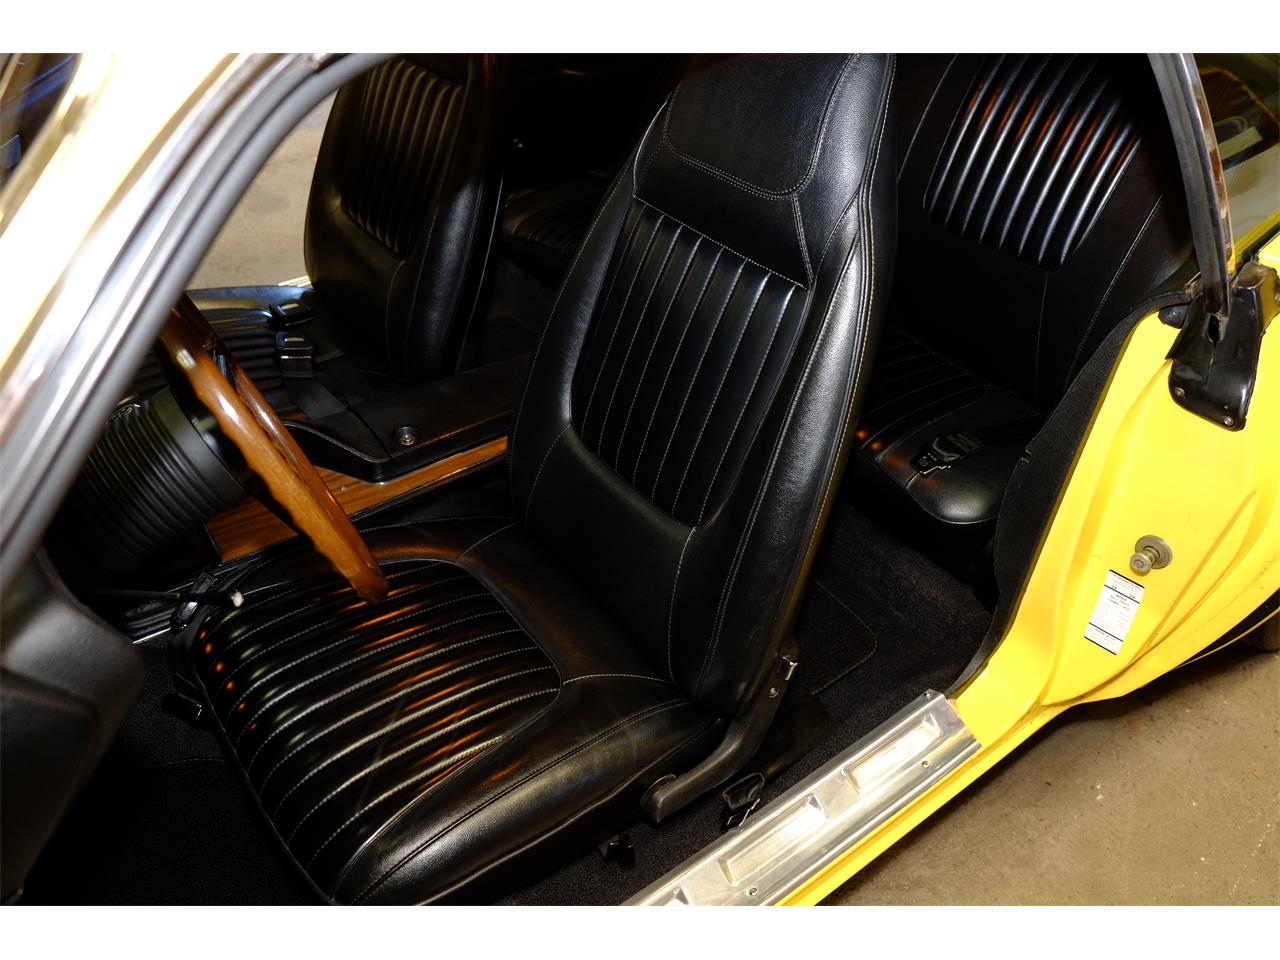 Large Picture of Classic '71 Dodge Challenger R/T 426 Hemi - $325,000.00 - JY6E